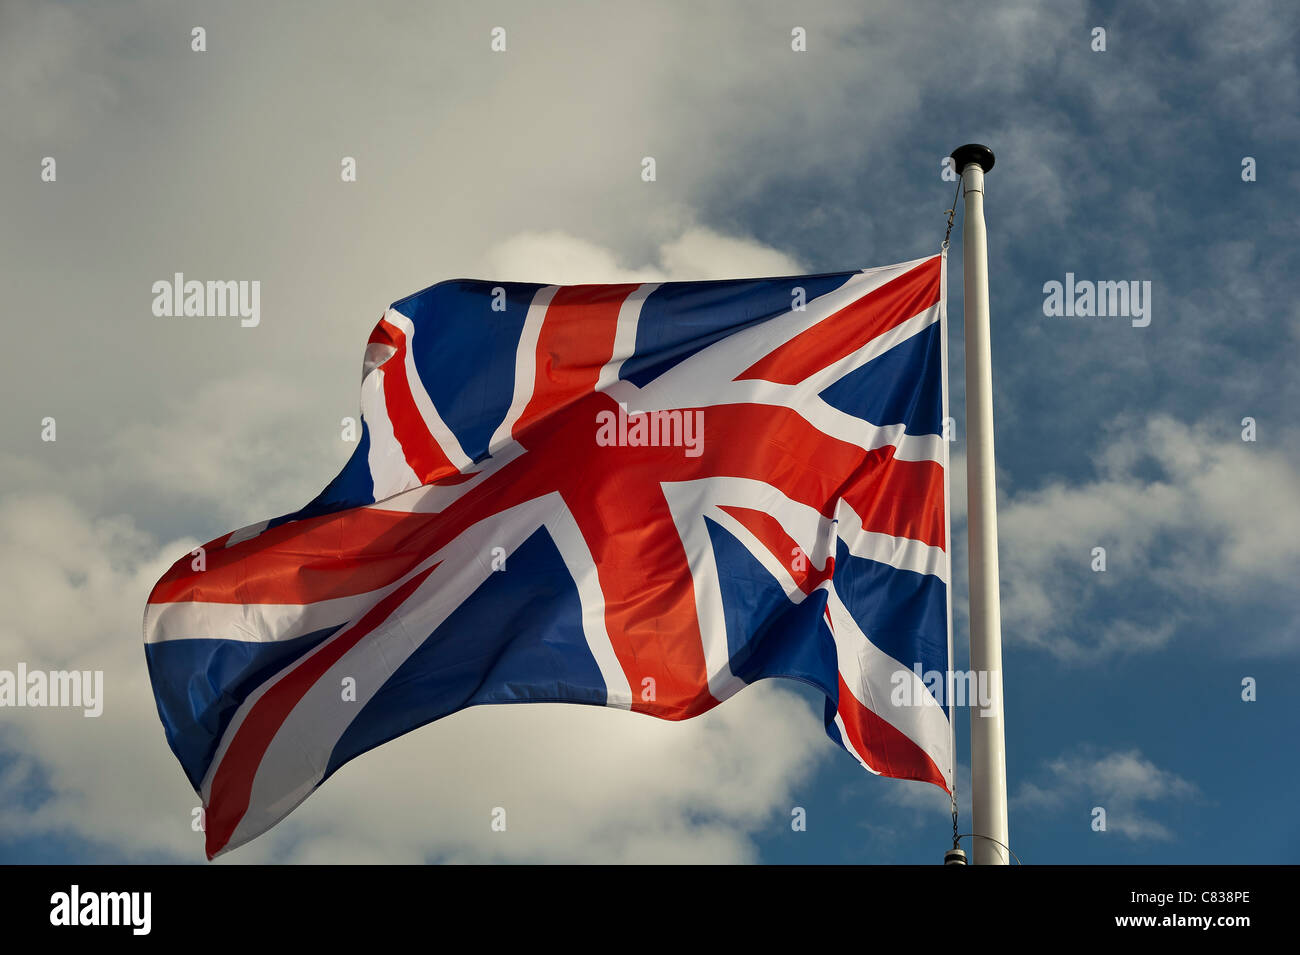 Union flag flying in the wind - Stock Image